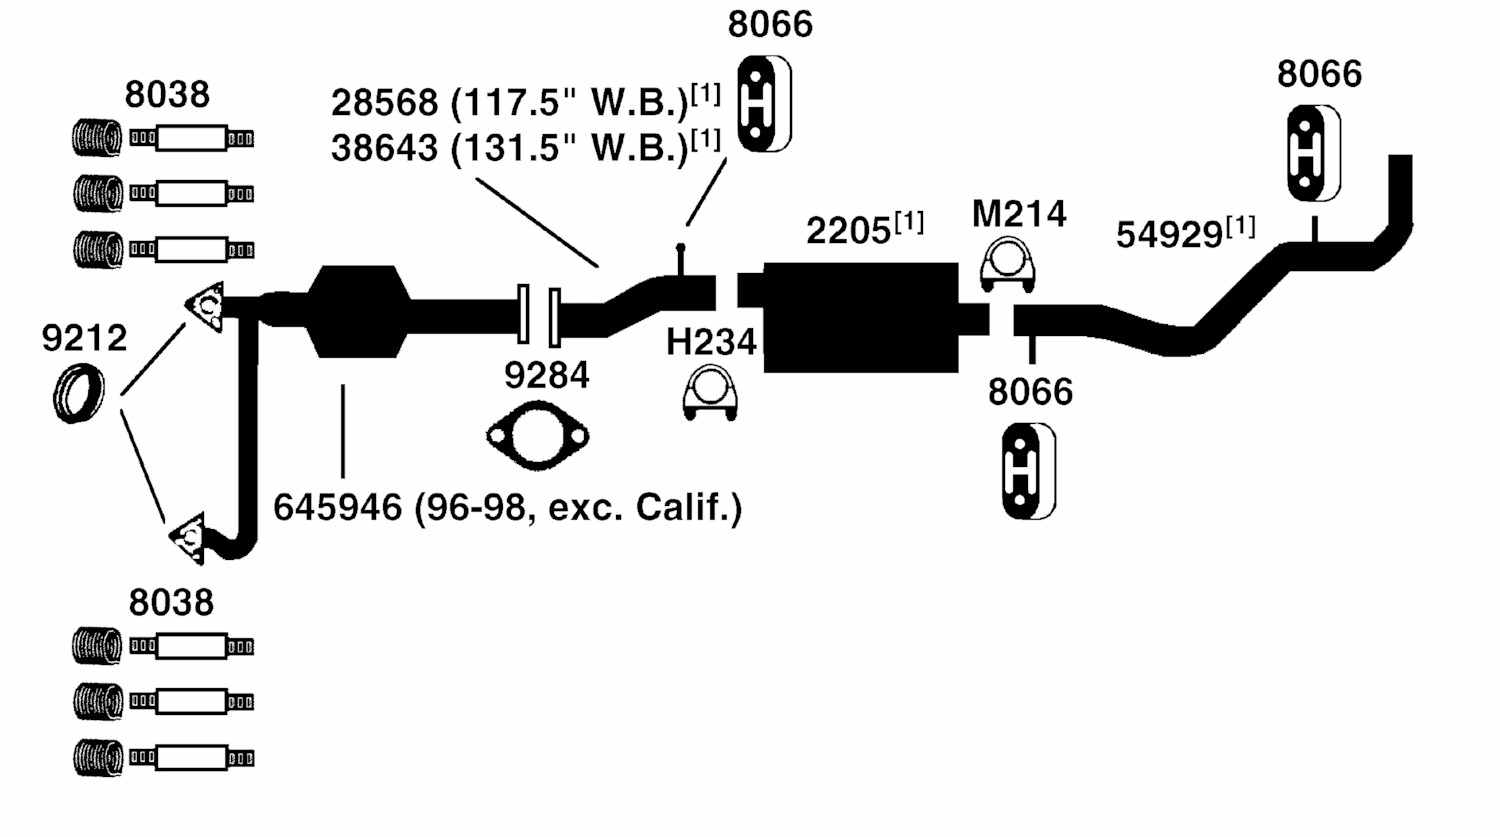 hight resolution of chevy silverado exhaust diagram wiring diagram today 2002 chevy silverado exhaust diagram 1990 chevy silverado exhaust